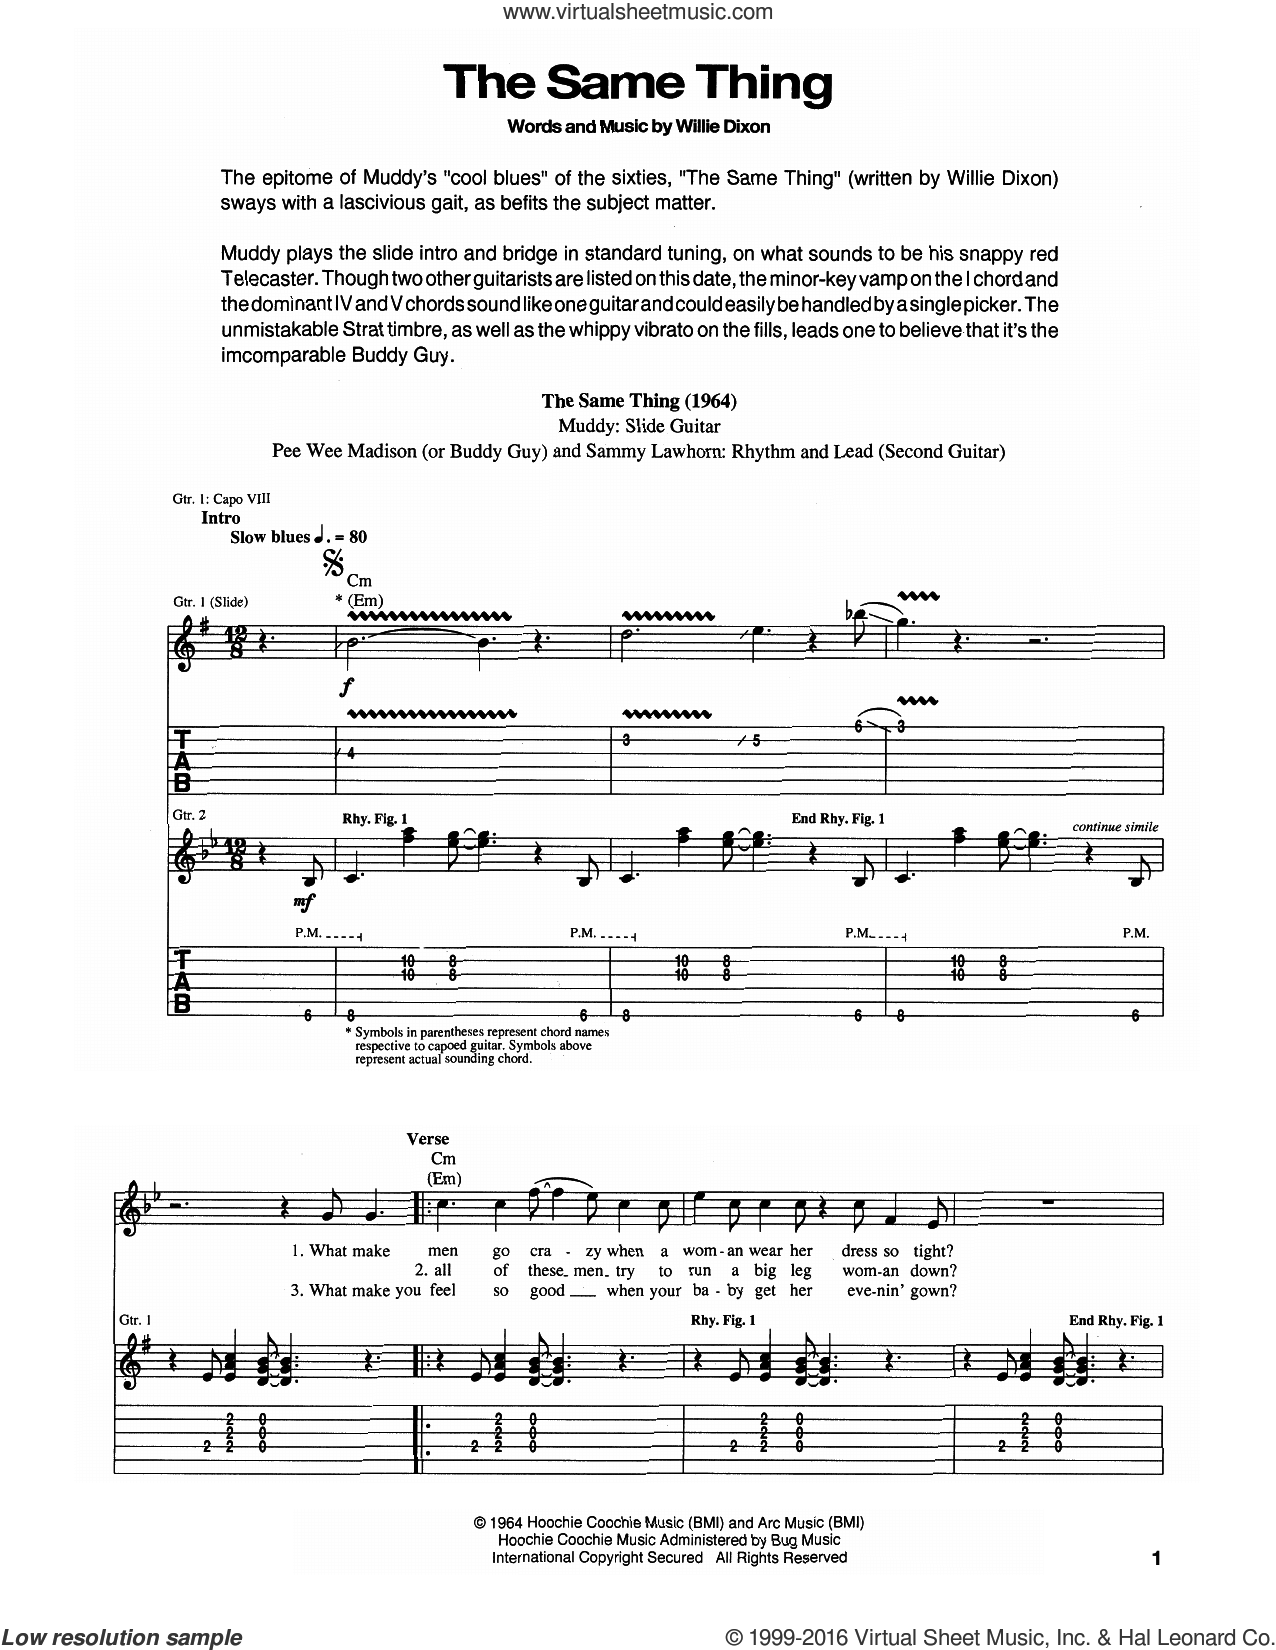 The Same Thing sheet music for guitar (tablature) by Muddy Waters, Buddy Guy, Pee Wee Madison, Sammy Lawhorn and Willie Dixon, intermediate. Score Image Preview.